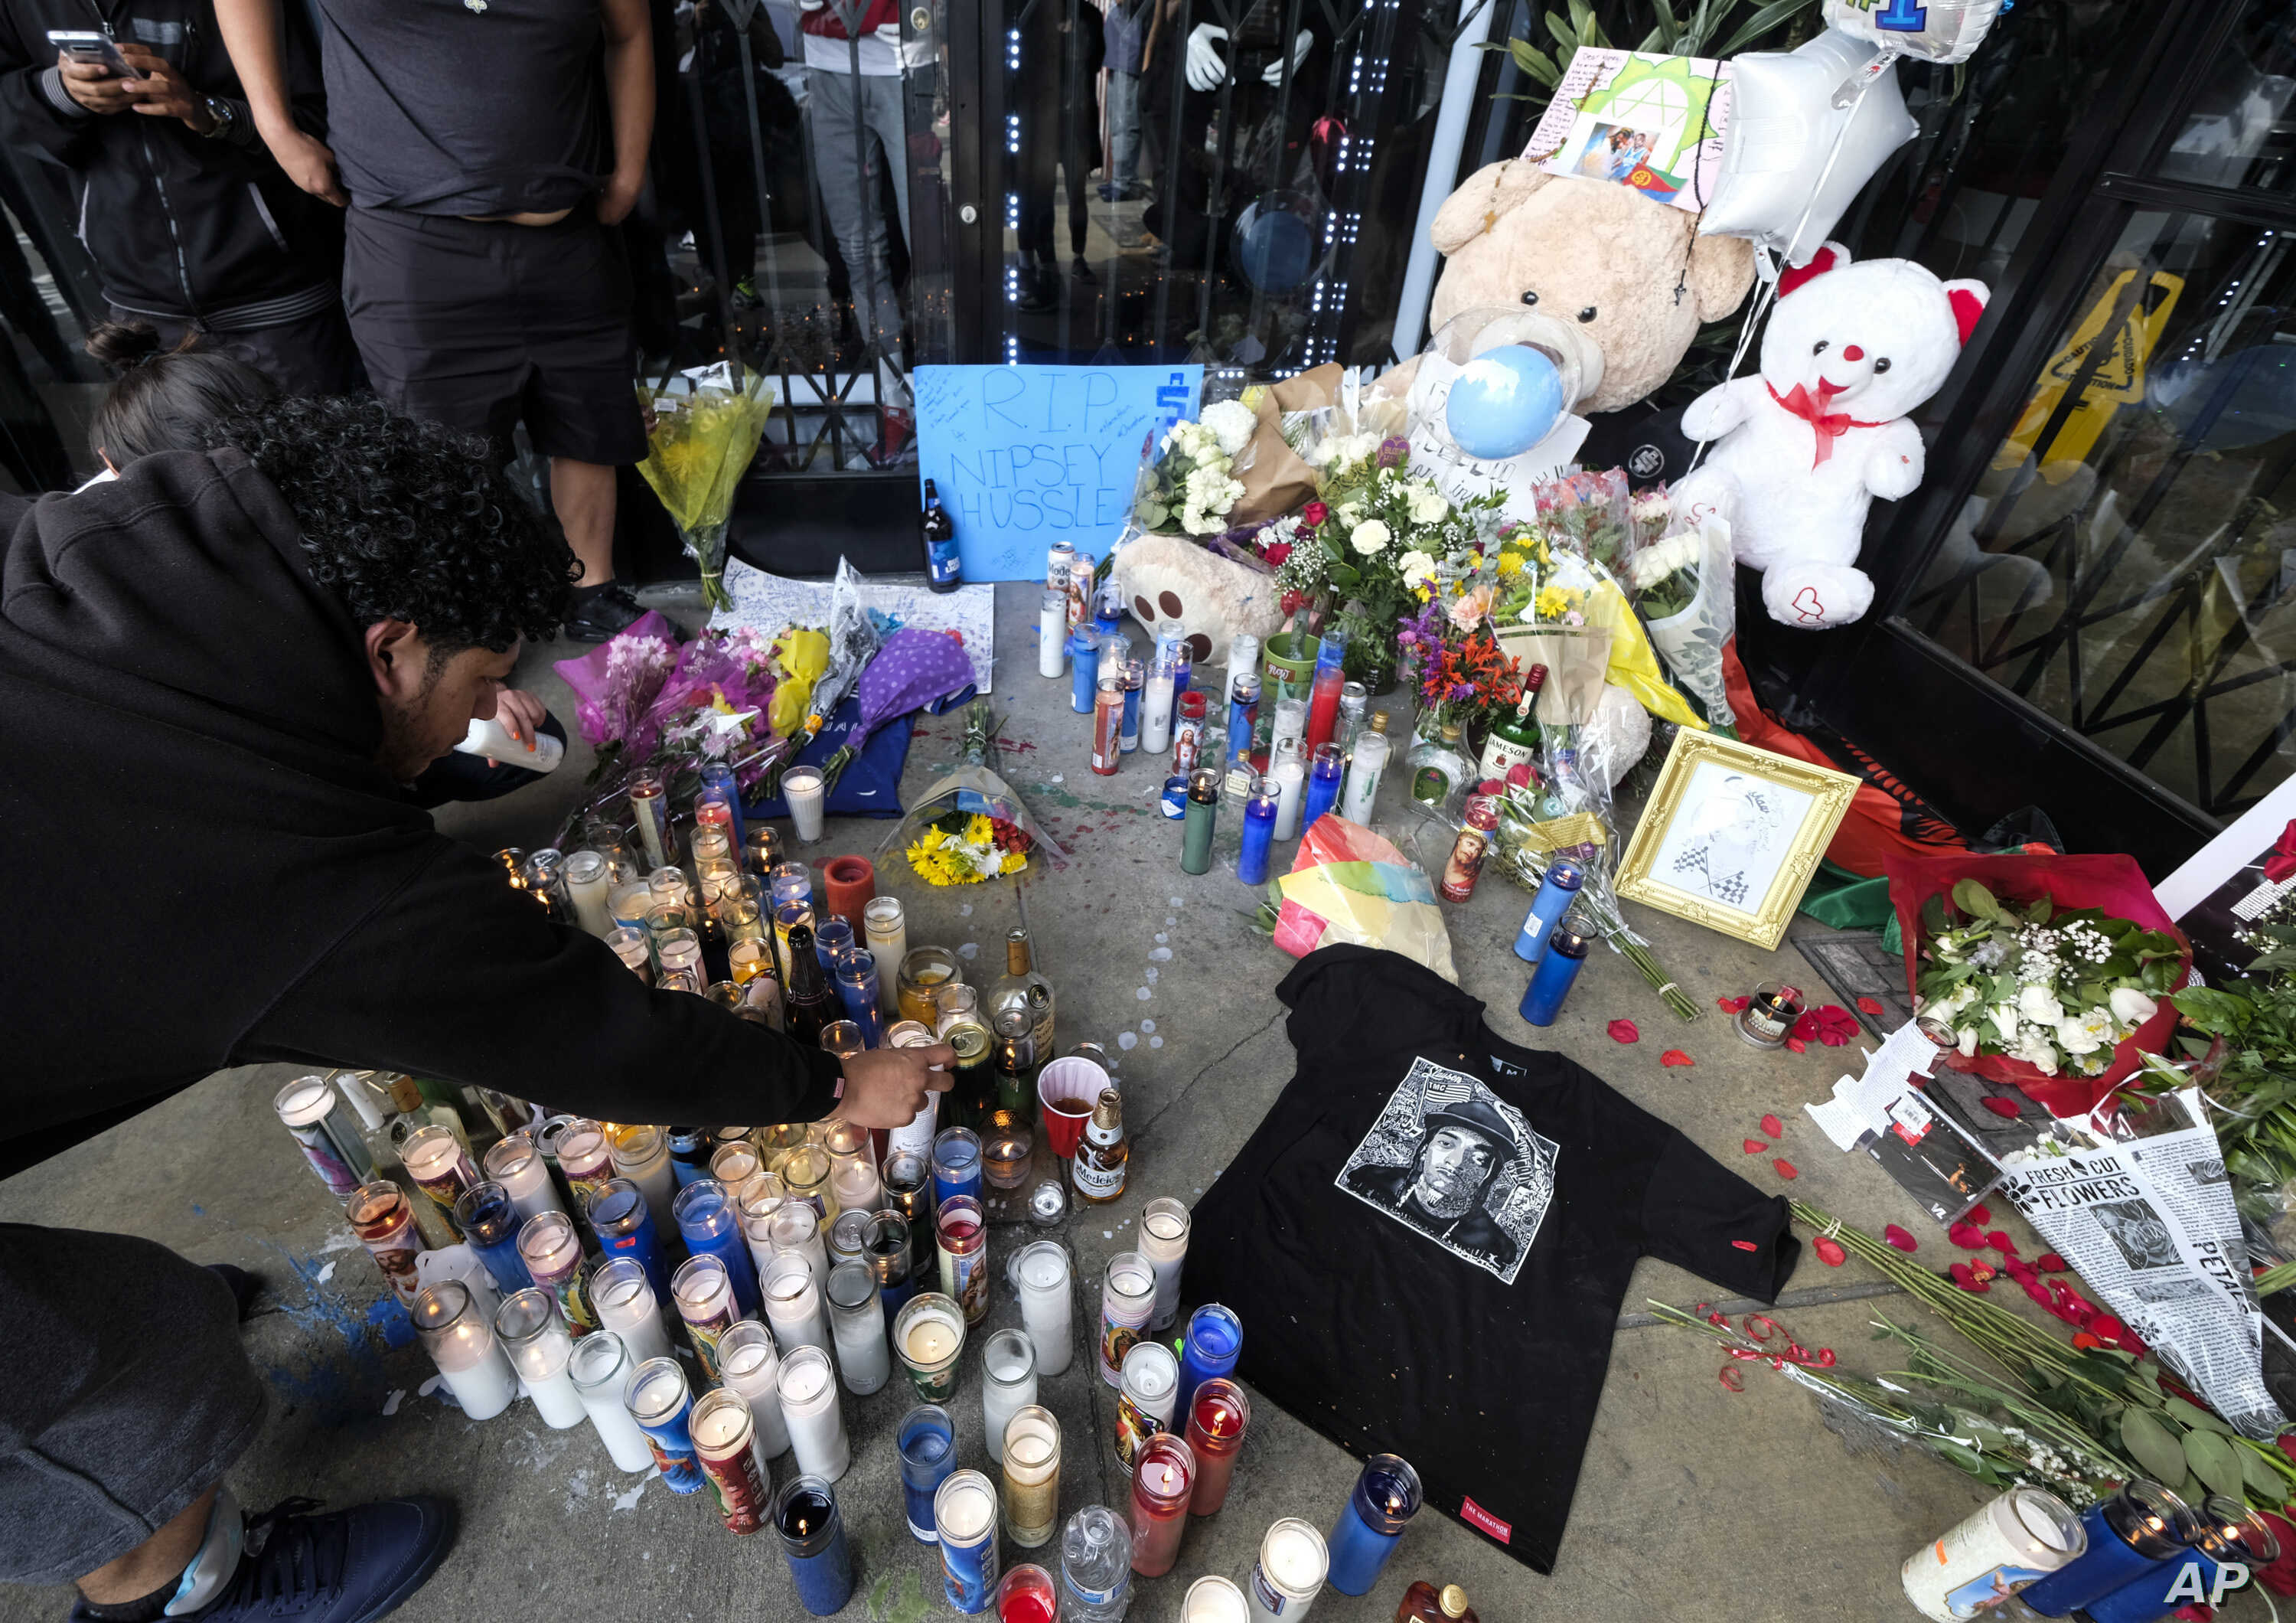 Nipsey Hussle Memorial Reveals the Man Behind Rap Persona | Voice of